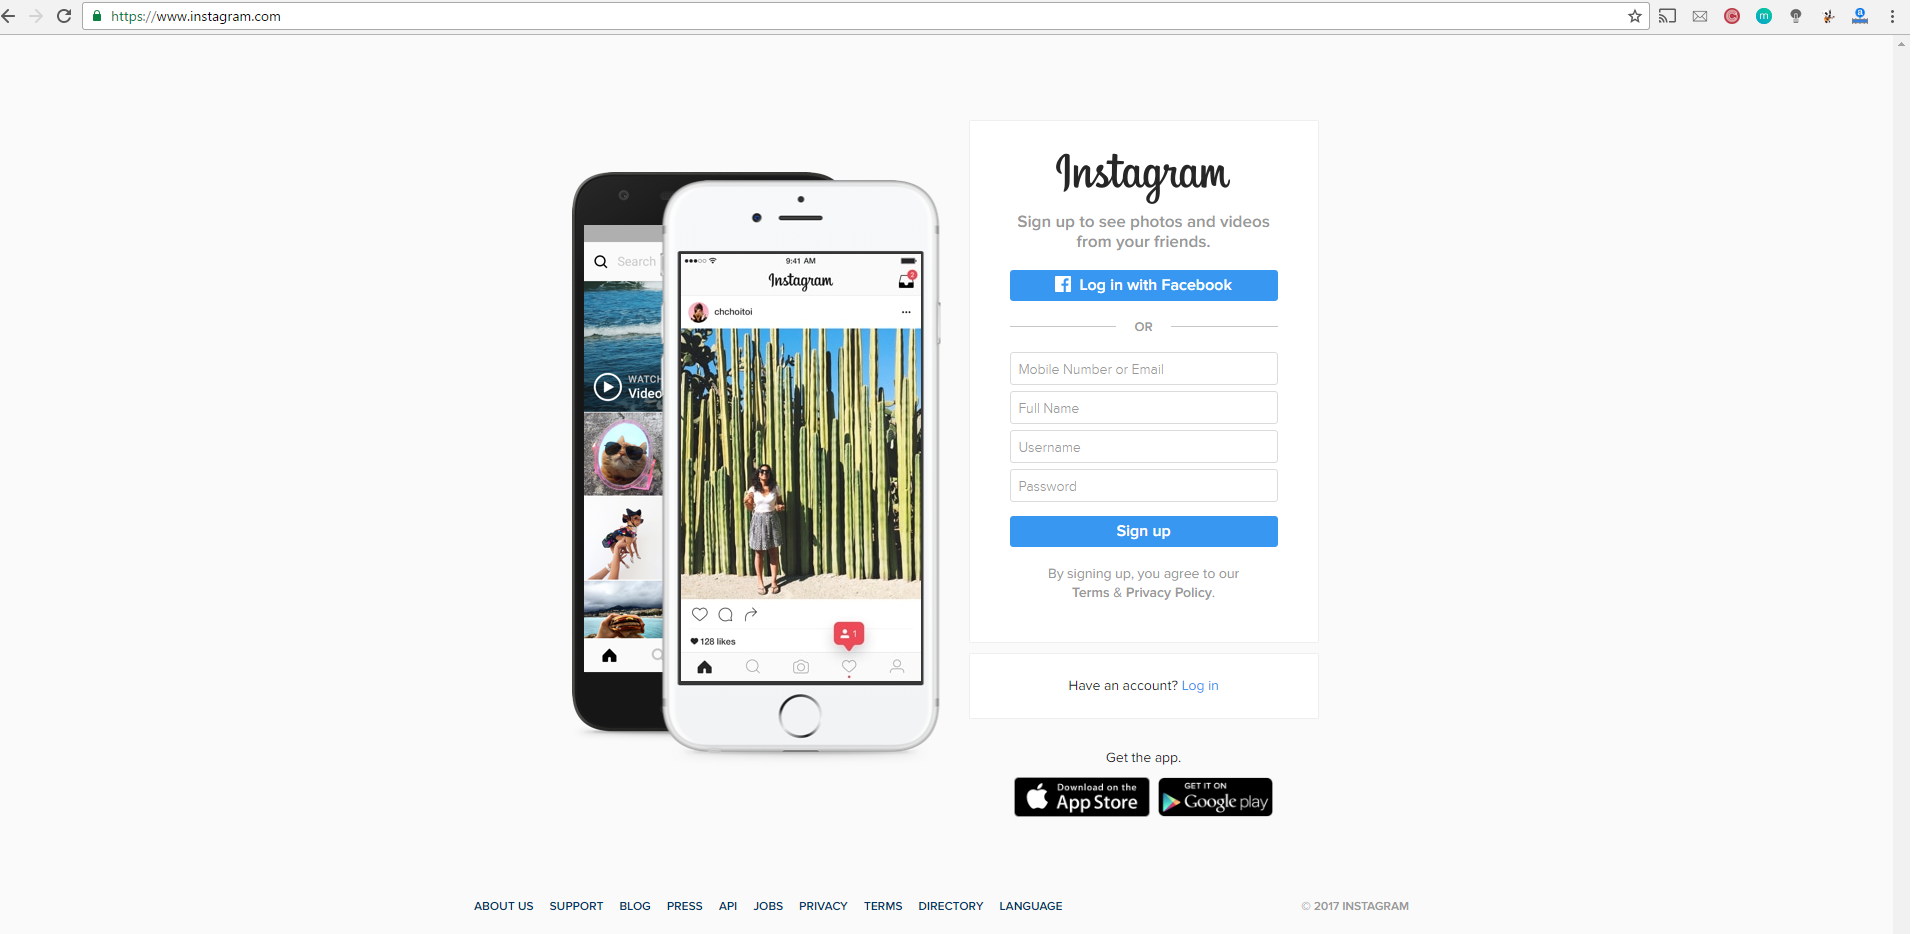 Why can't I sign up for Instagram online on the web? - Quora